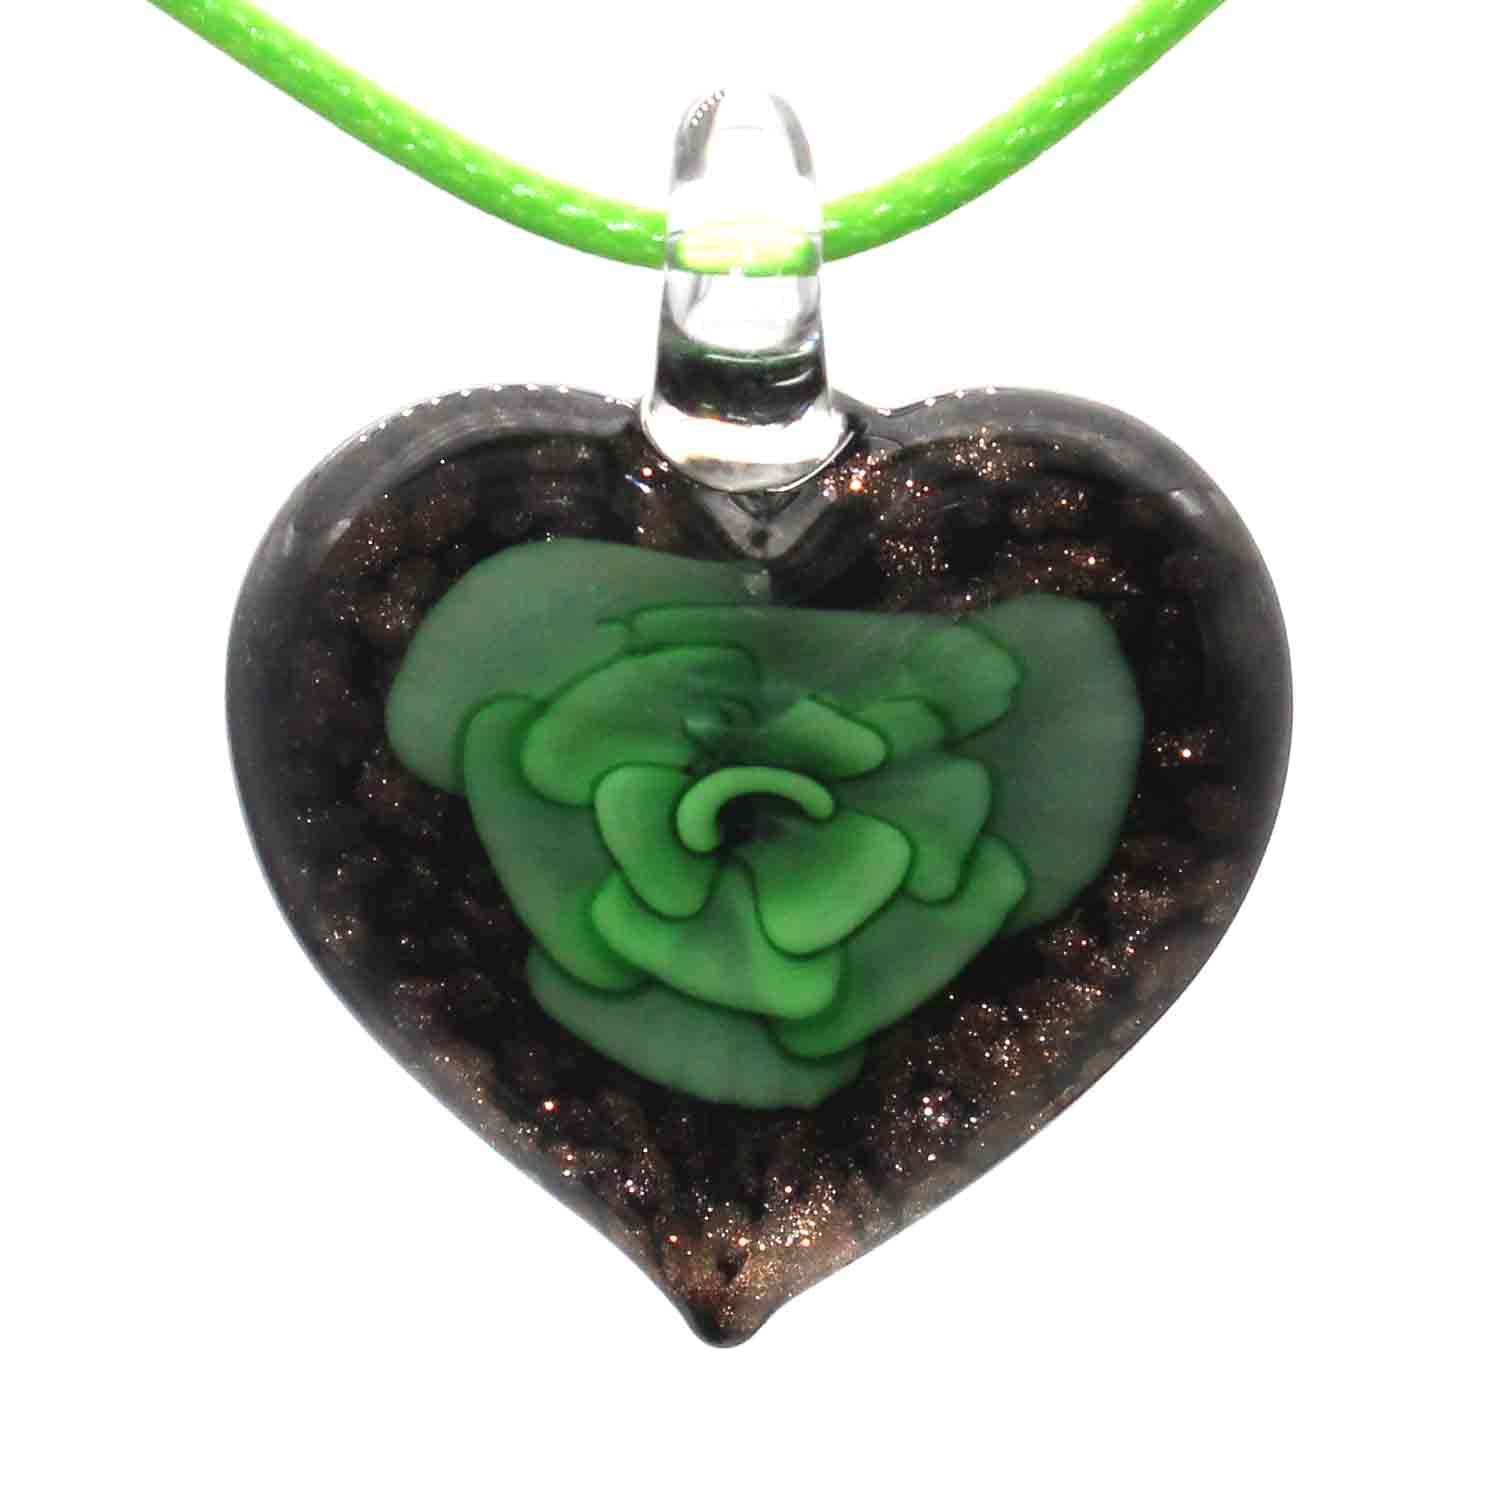 Primary image for 6 Colors Glass Jewelry Flower Heart Murano Glass Pendant Lampwork Glass Pendant